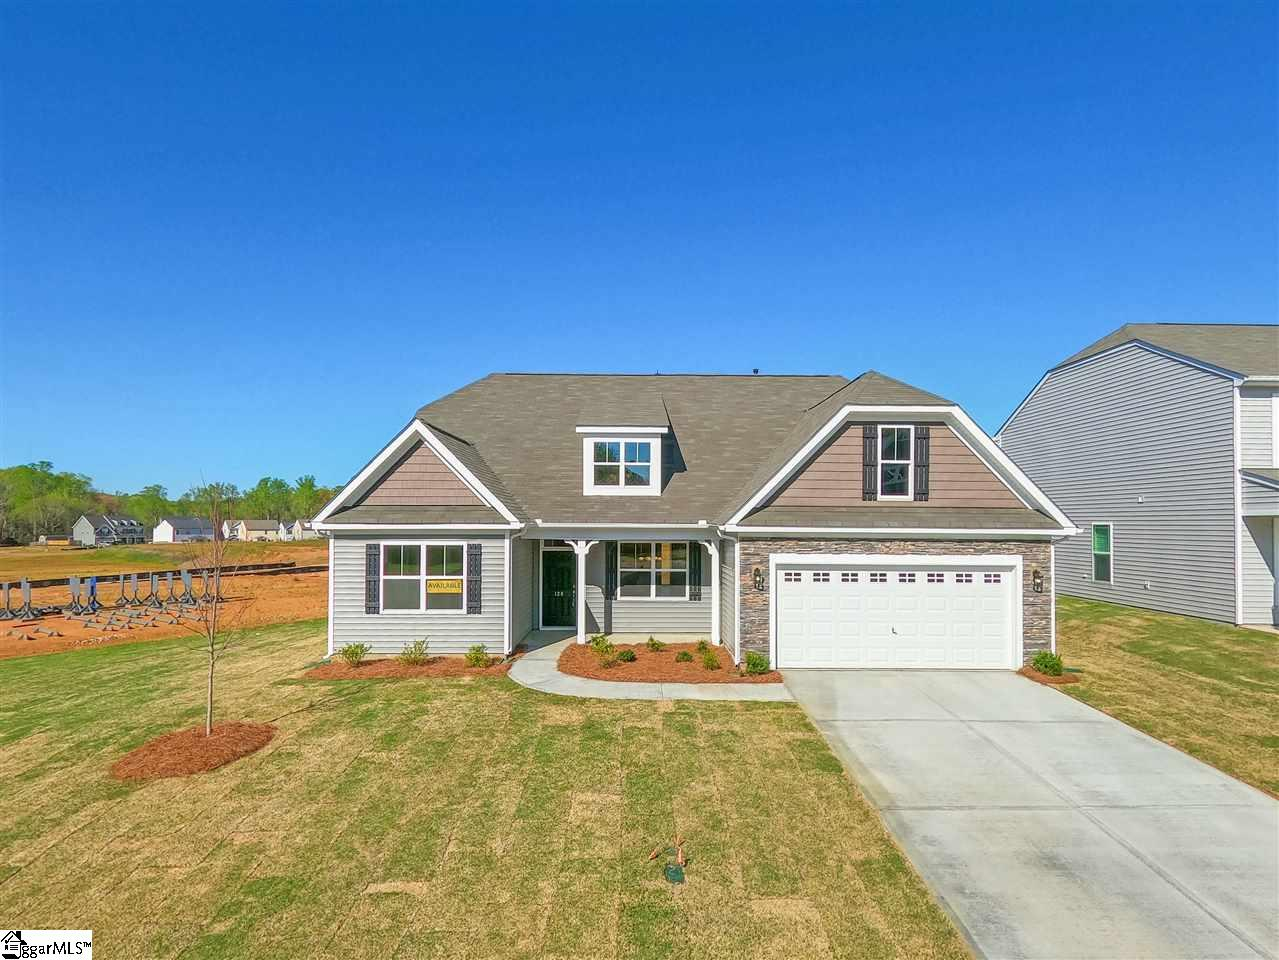 128 Noble Creek Woodruff, SC 29388